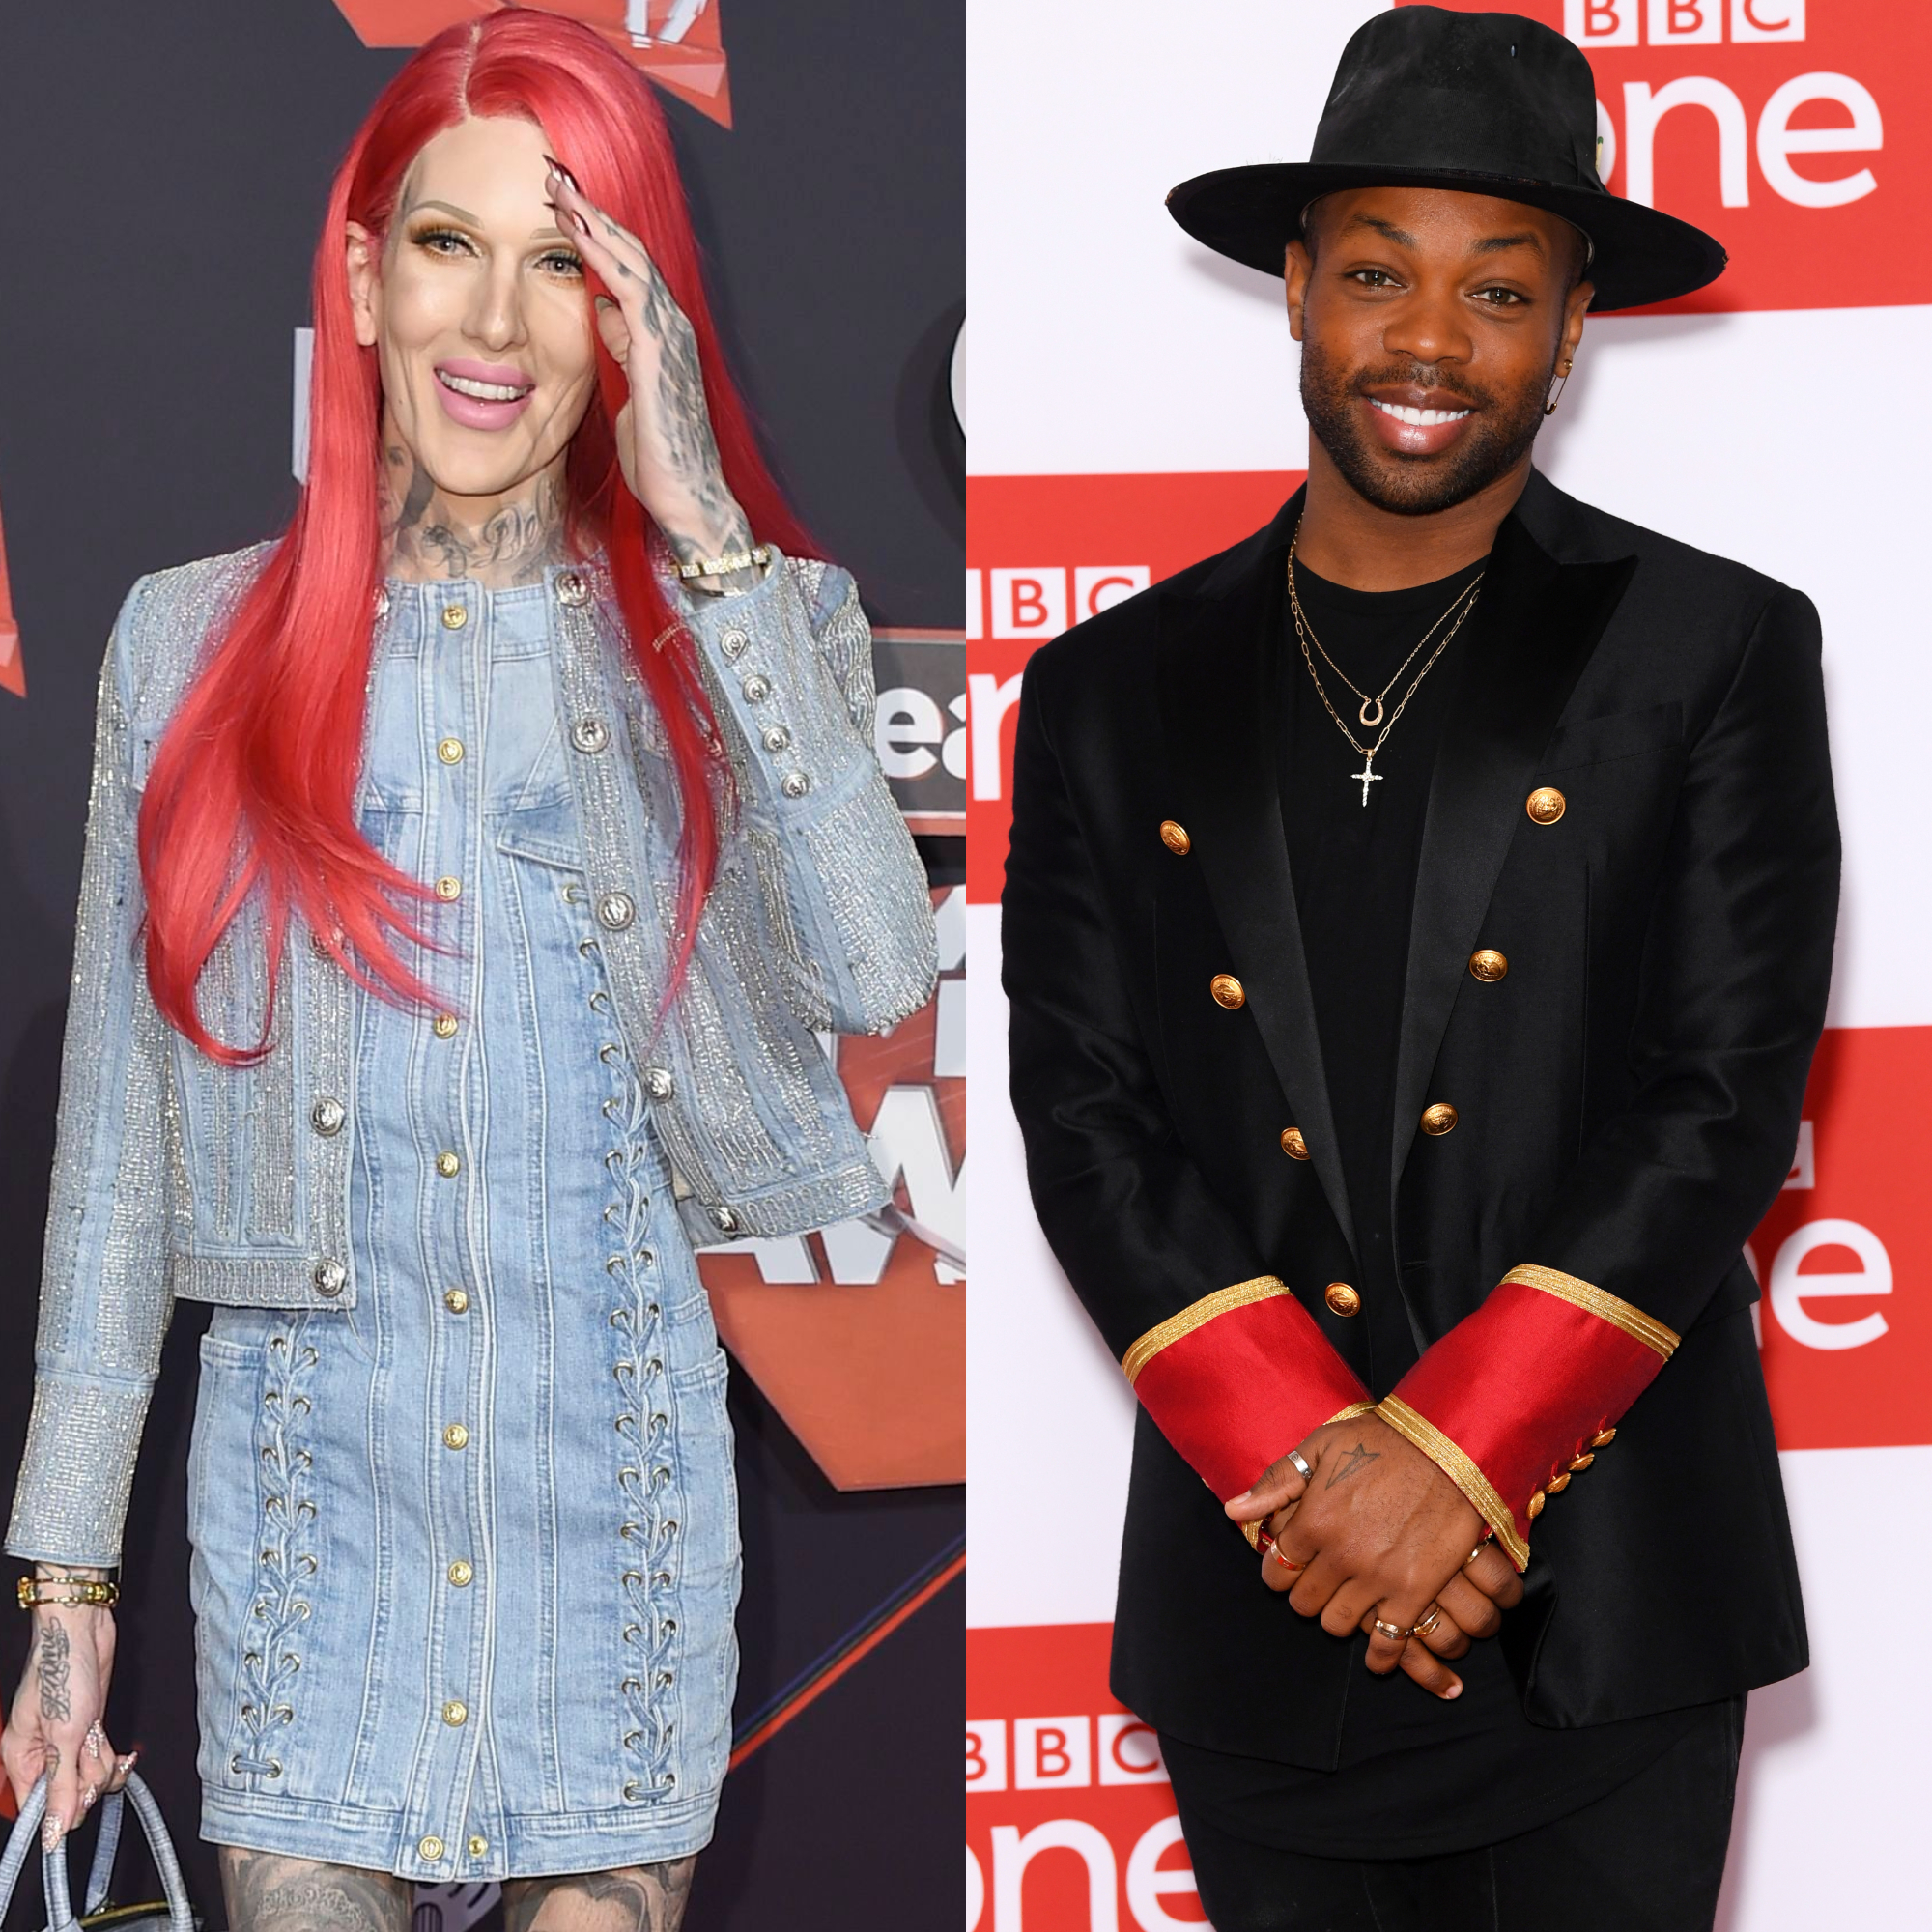 Newly Single Jeffree Star and Todrick Hall Have a Flirty Exchange on Instagram